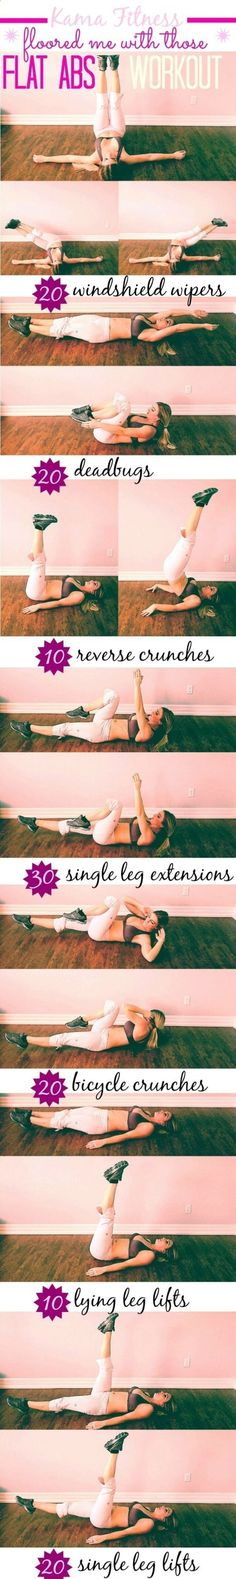 #Loathe Your Love Handles? These 26 Exercises Can Banish Them for Good!